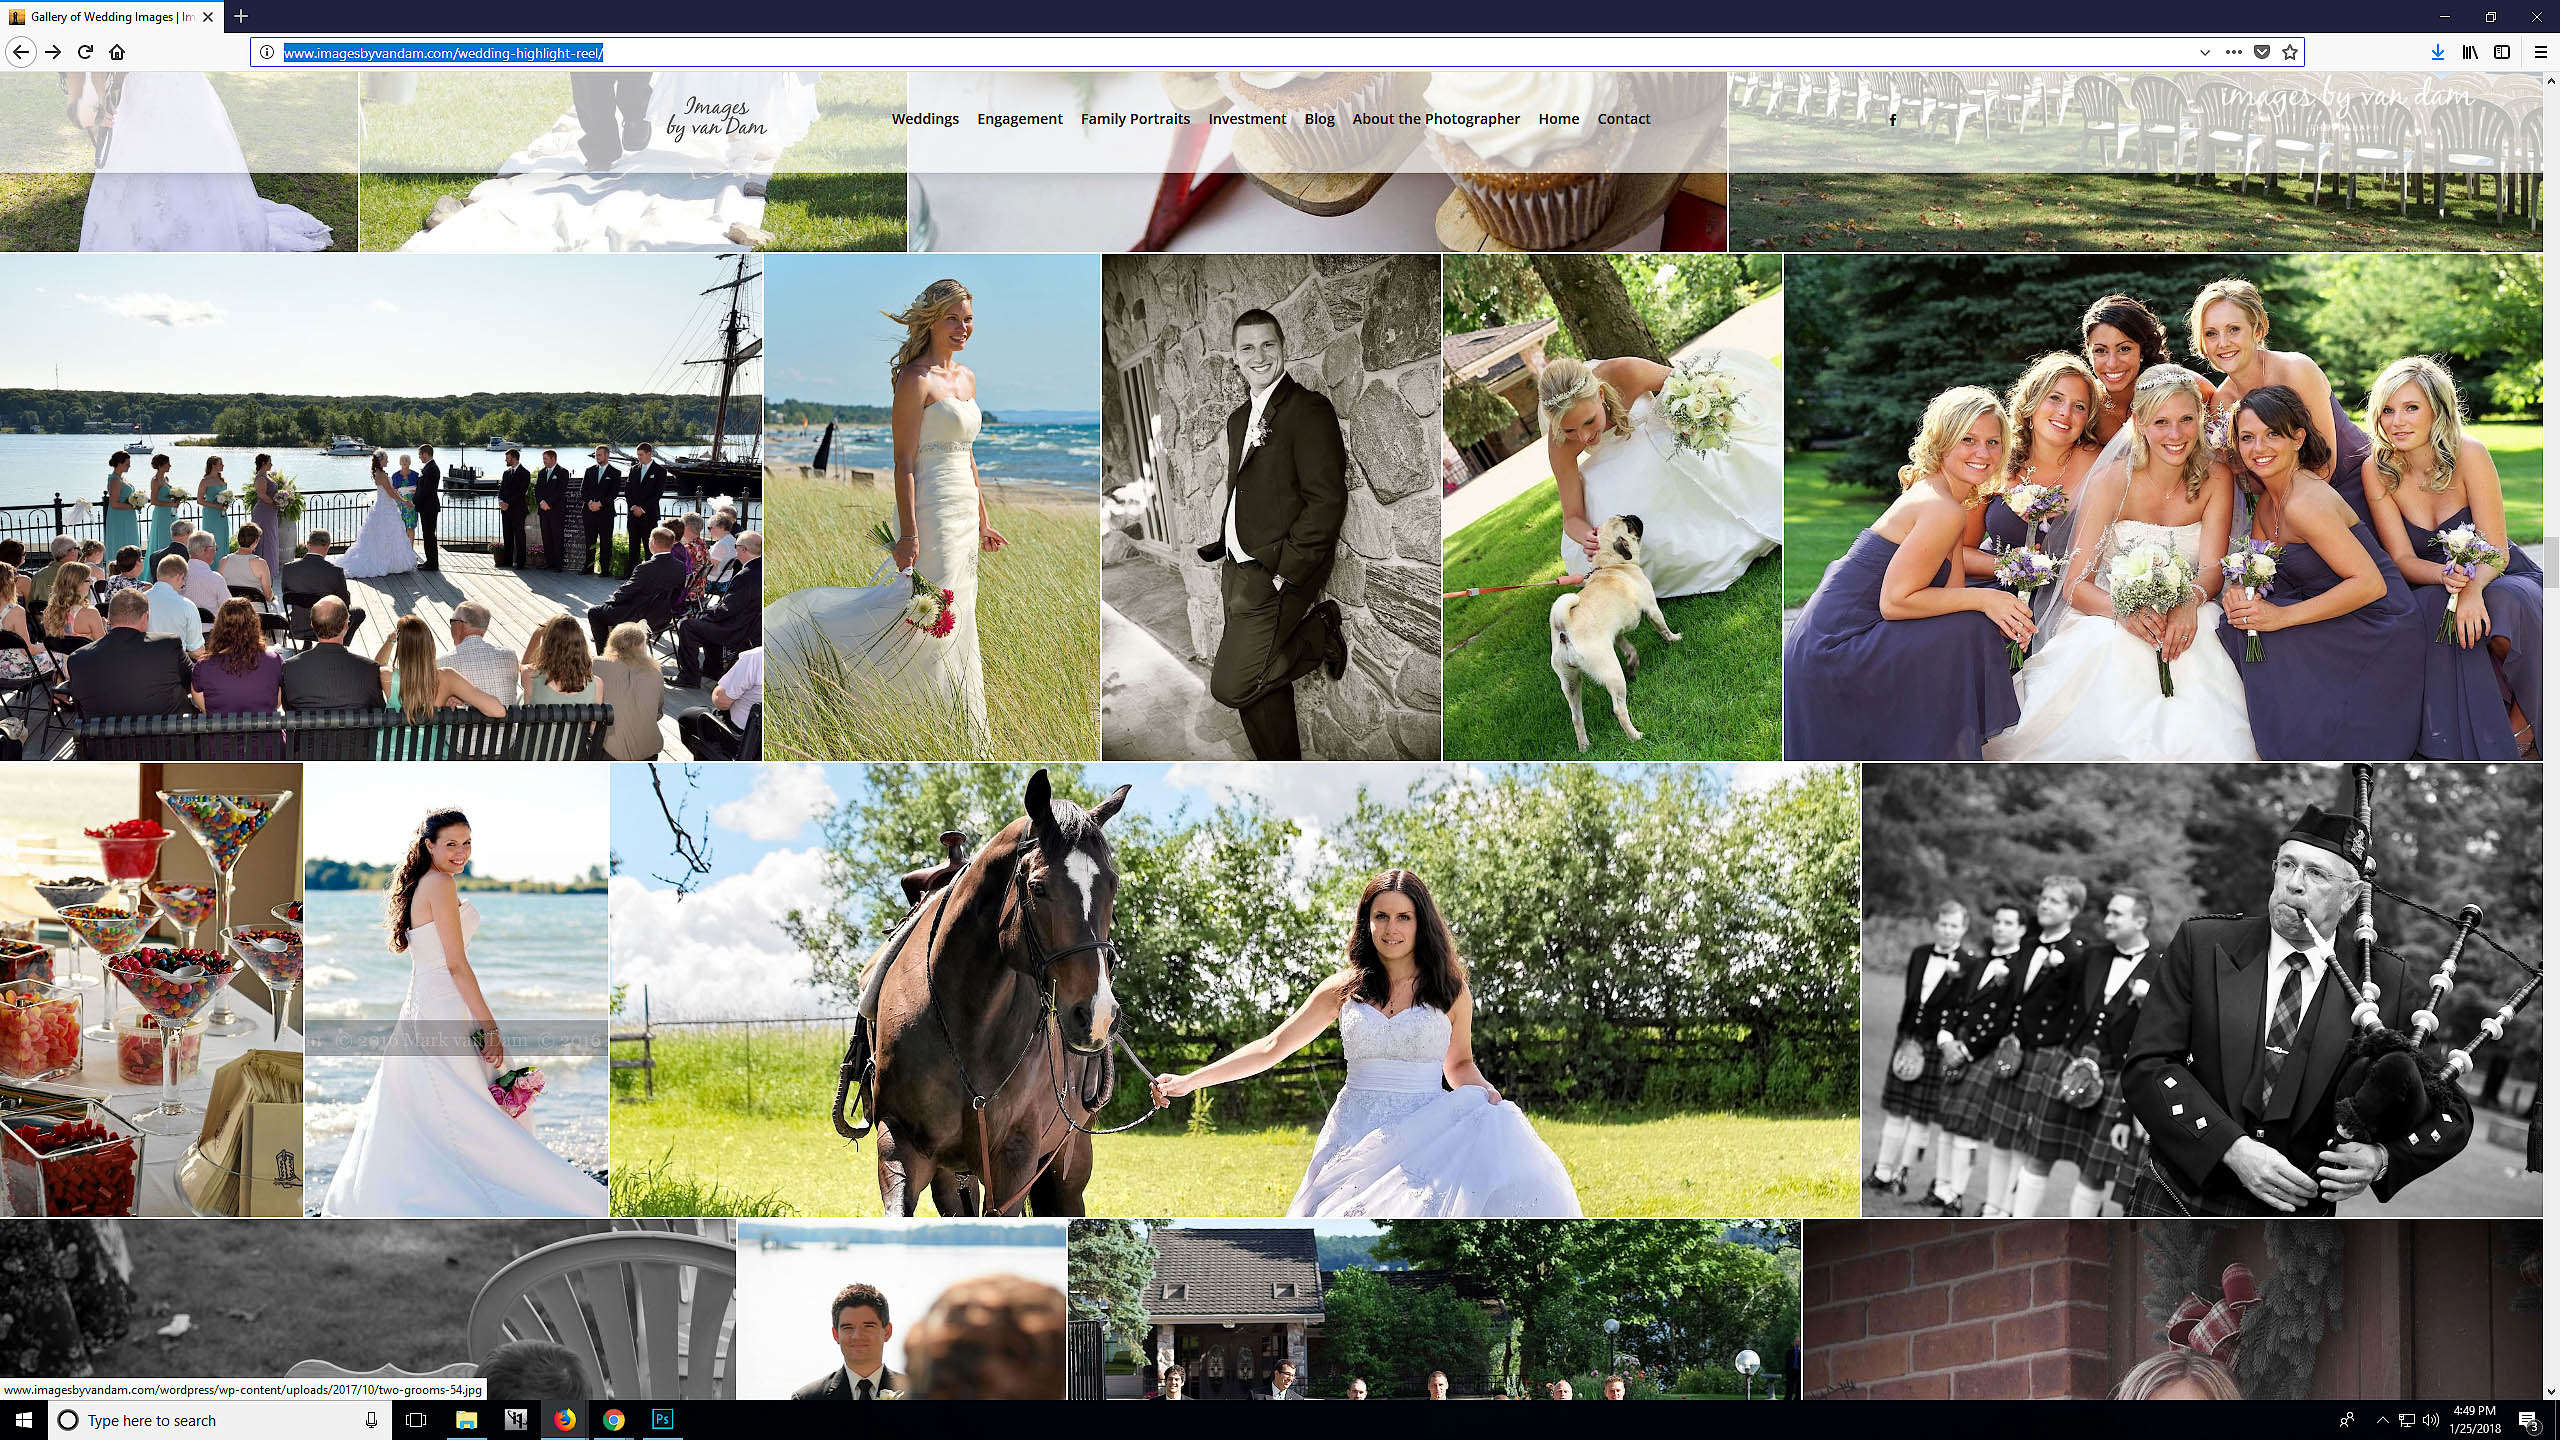 collingwood photographer Mark van Dam wedding photography highlight reel